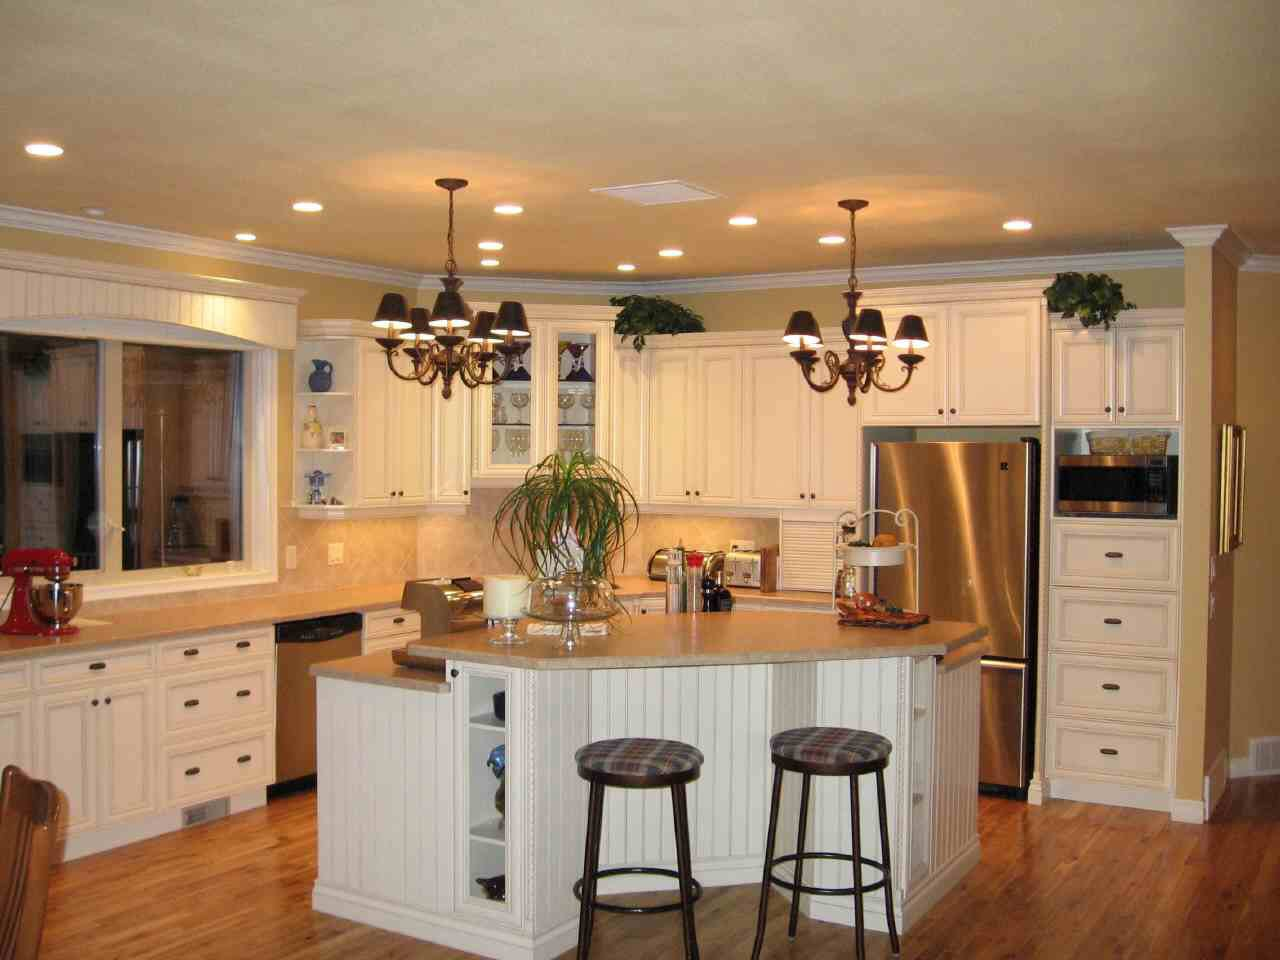 Incredible Kitchen Island Design Ideas for Small Kitchens 1280 x 960 · 109 kB · jpeg